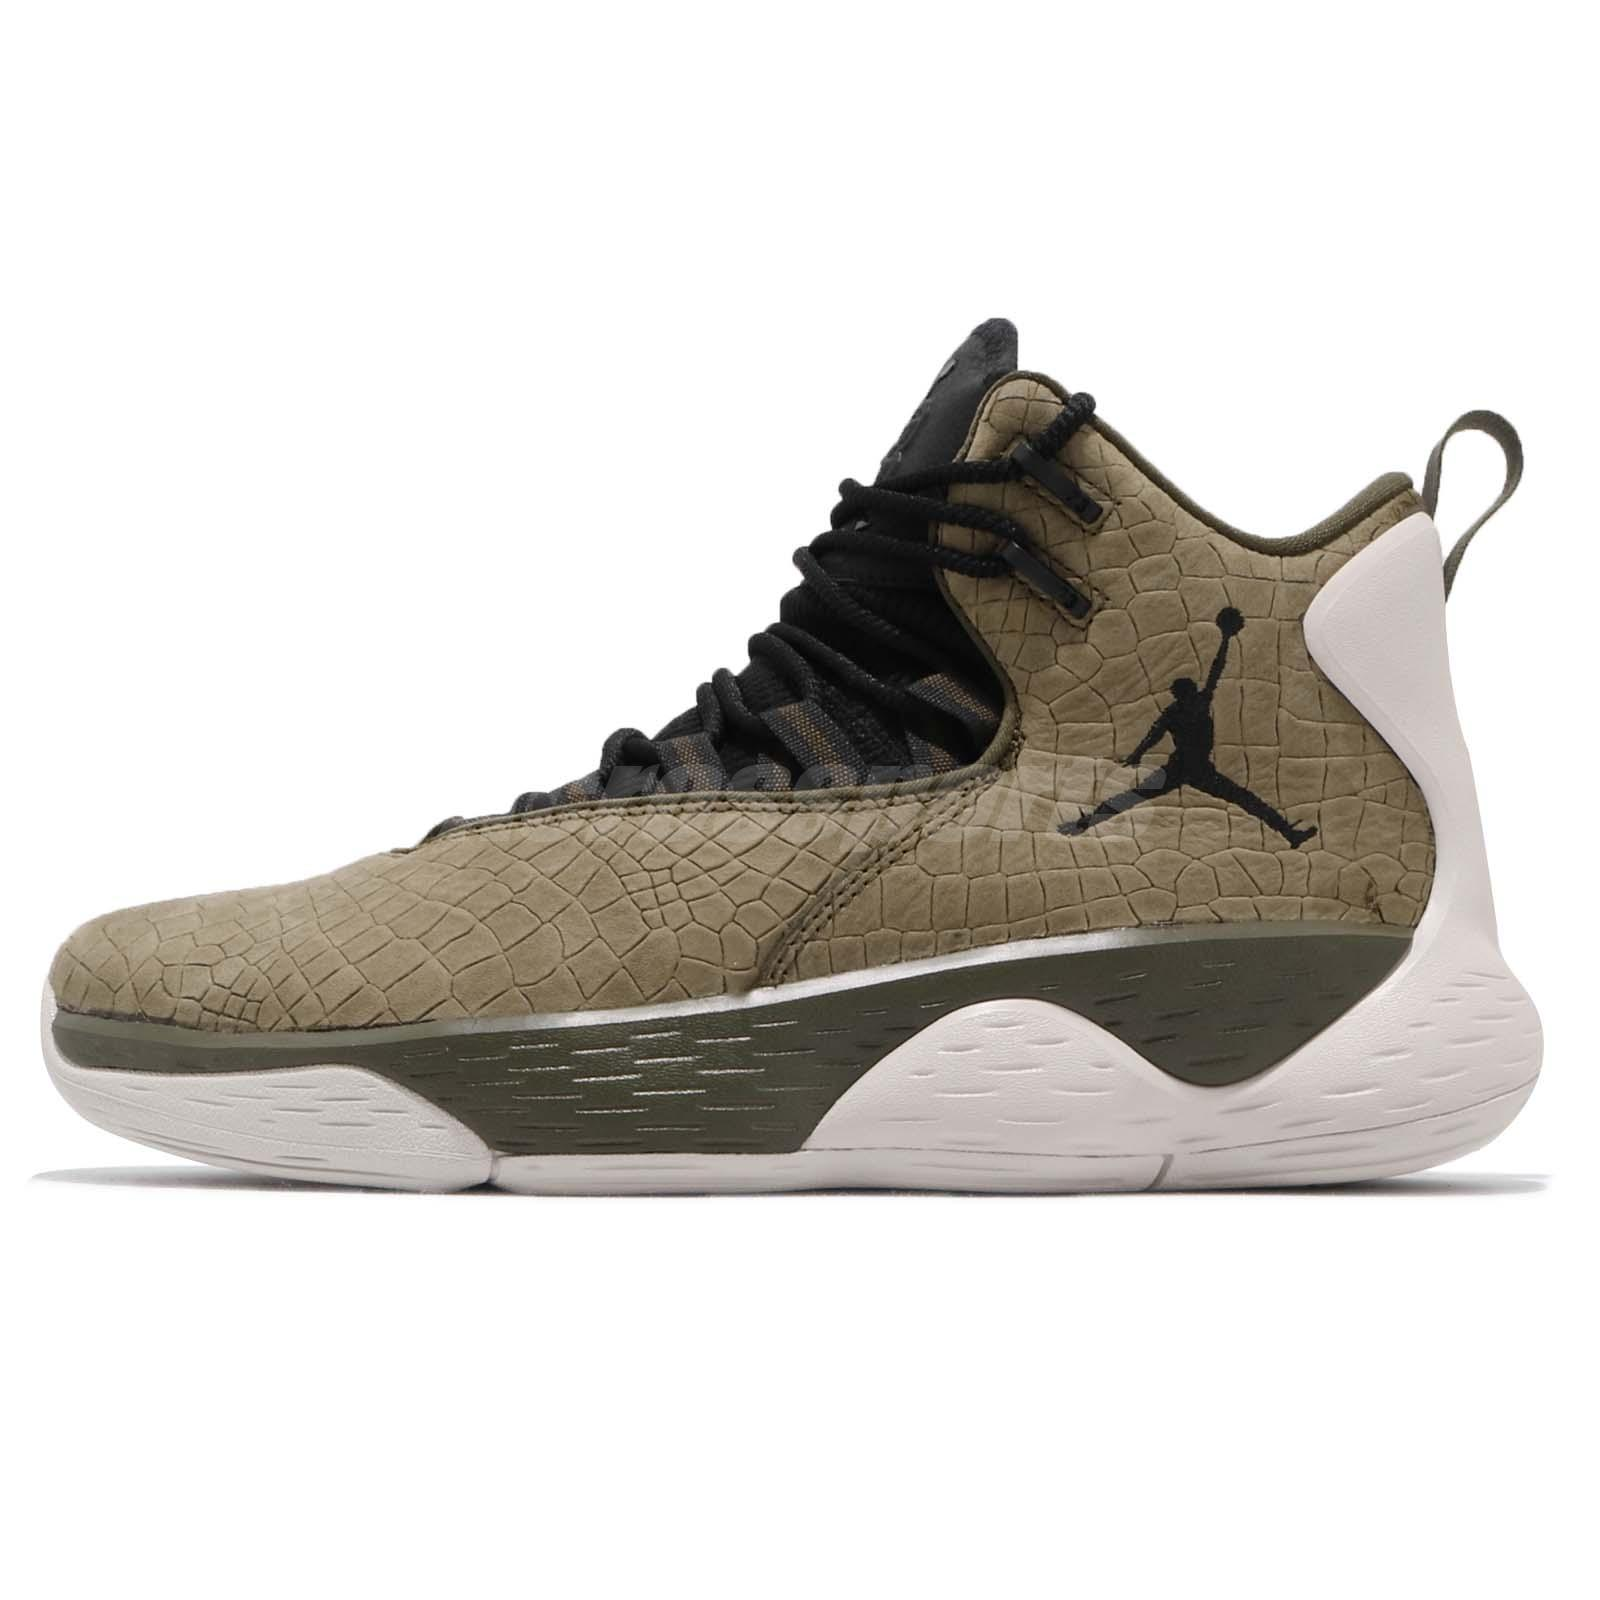 Nike Jordan Super.Fly MVP PF Olive Canvas Black Men Basketball Shoes  AR0038-300 ac734ed170d